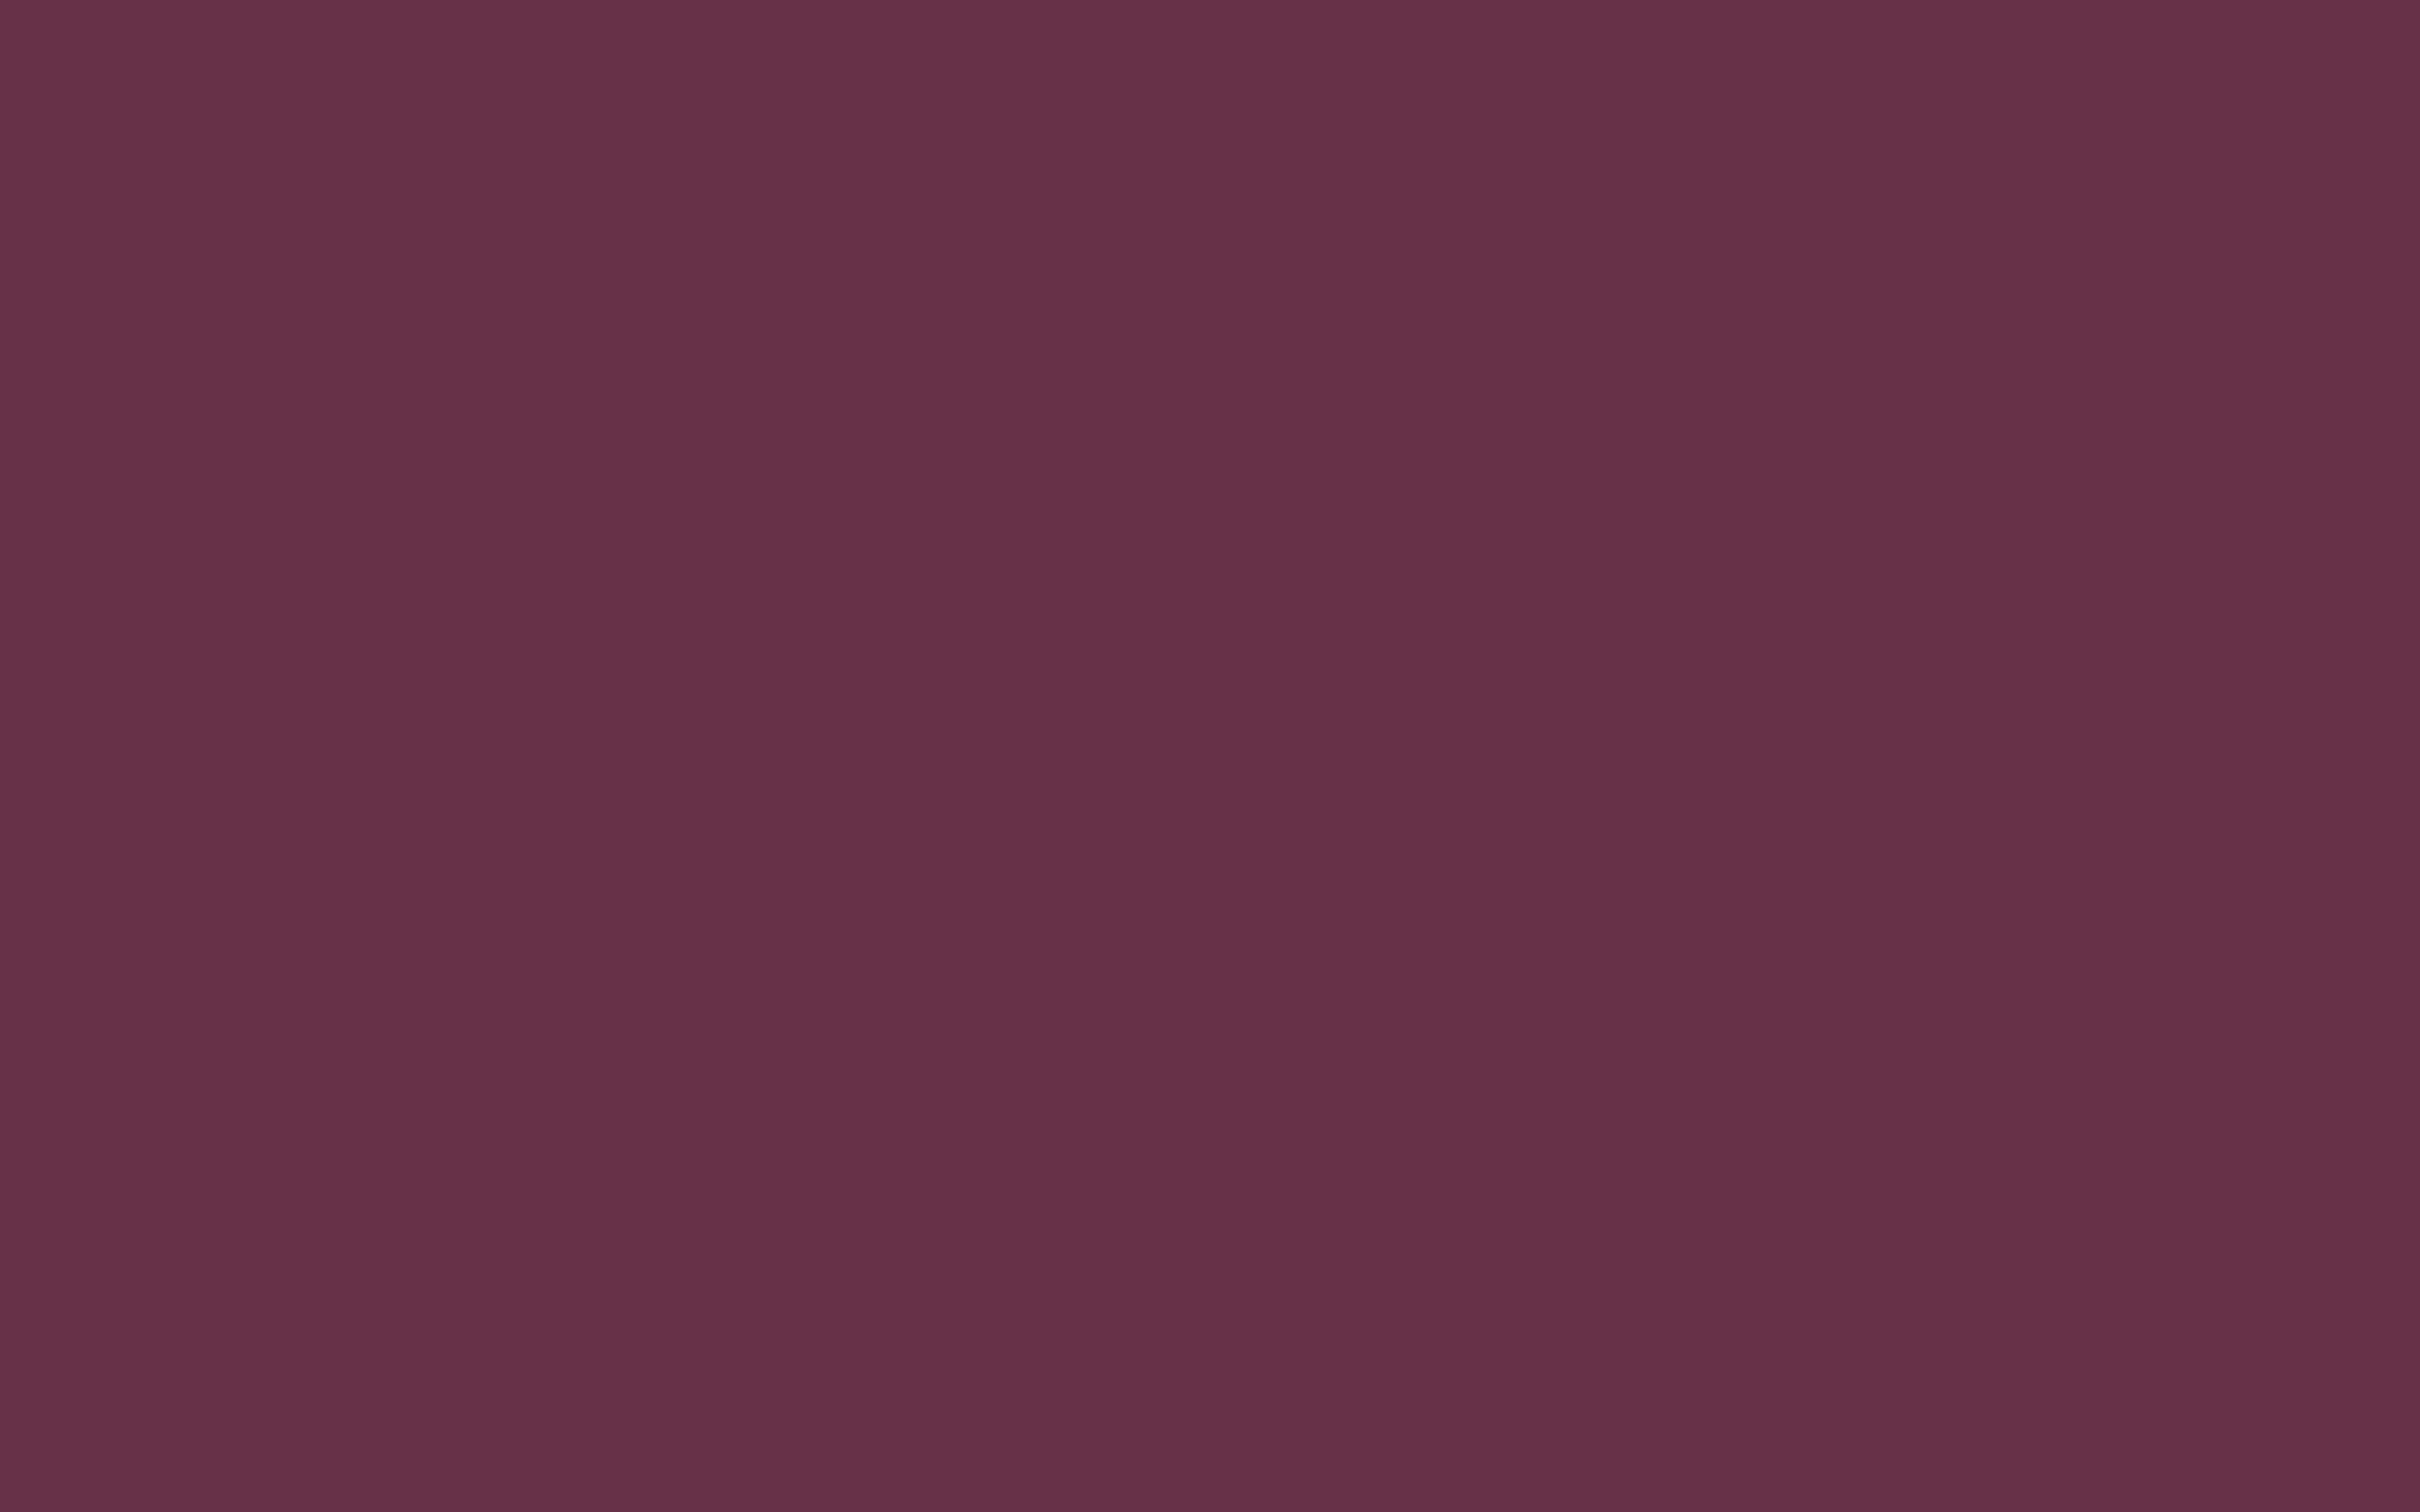 2560x1600 Wine Dregs Solid Color Background